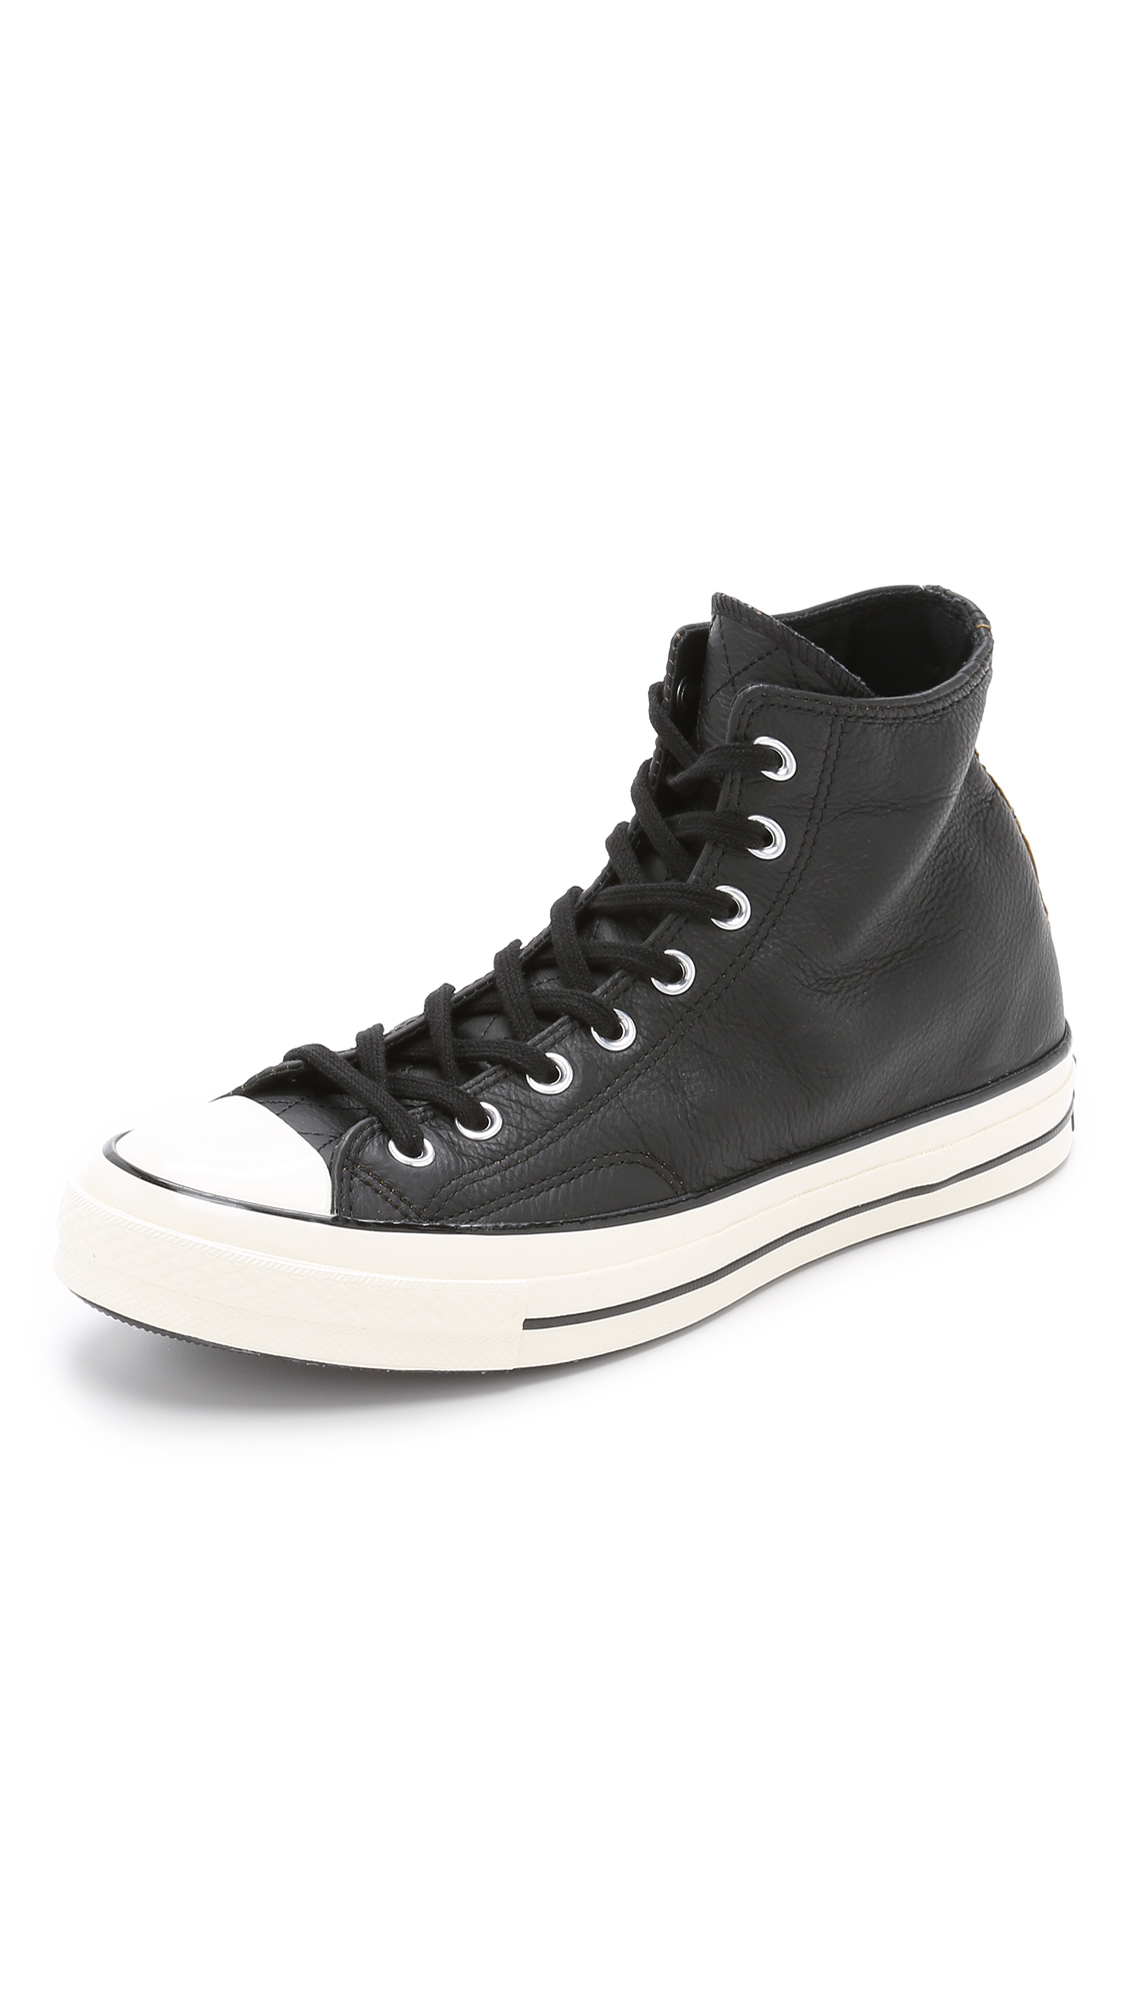 6d489939213 Lyst - Converse Chuck Taylor All Star  70s Leather High Top Sneakers ...